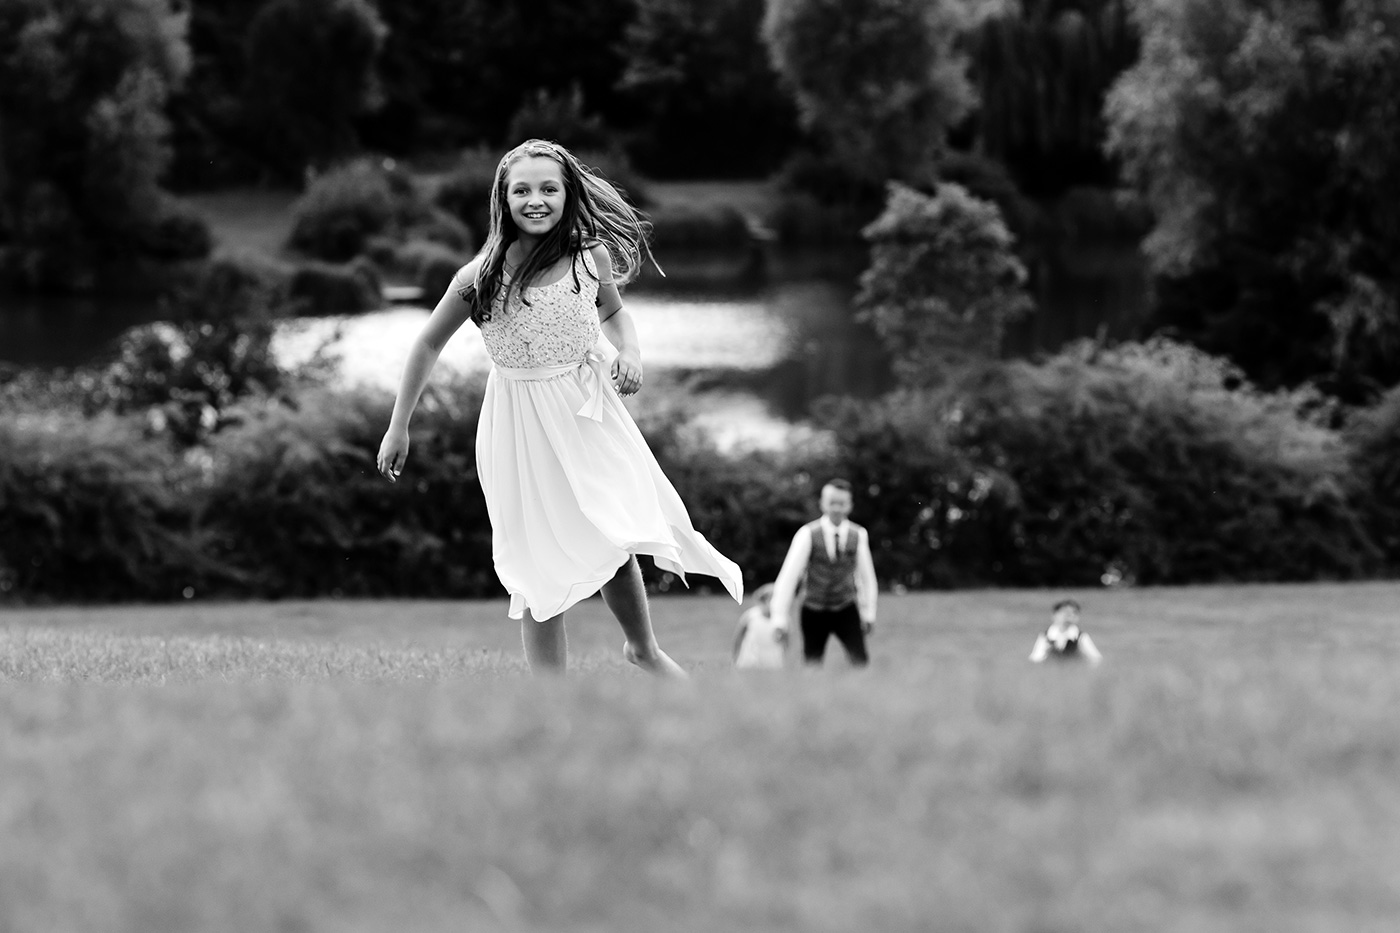 Children play on the hill at the Three Lakes Resort in Hertfordshire.